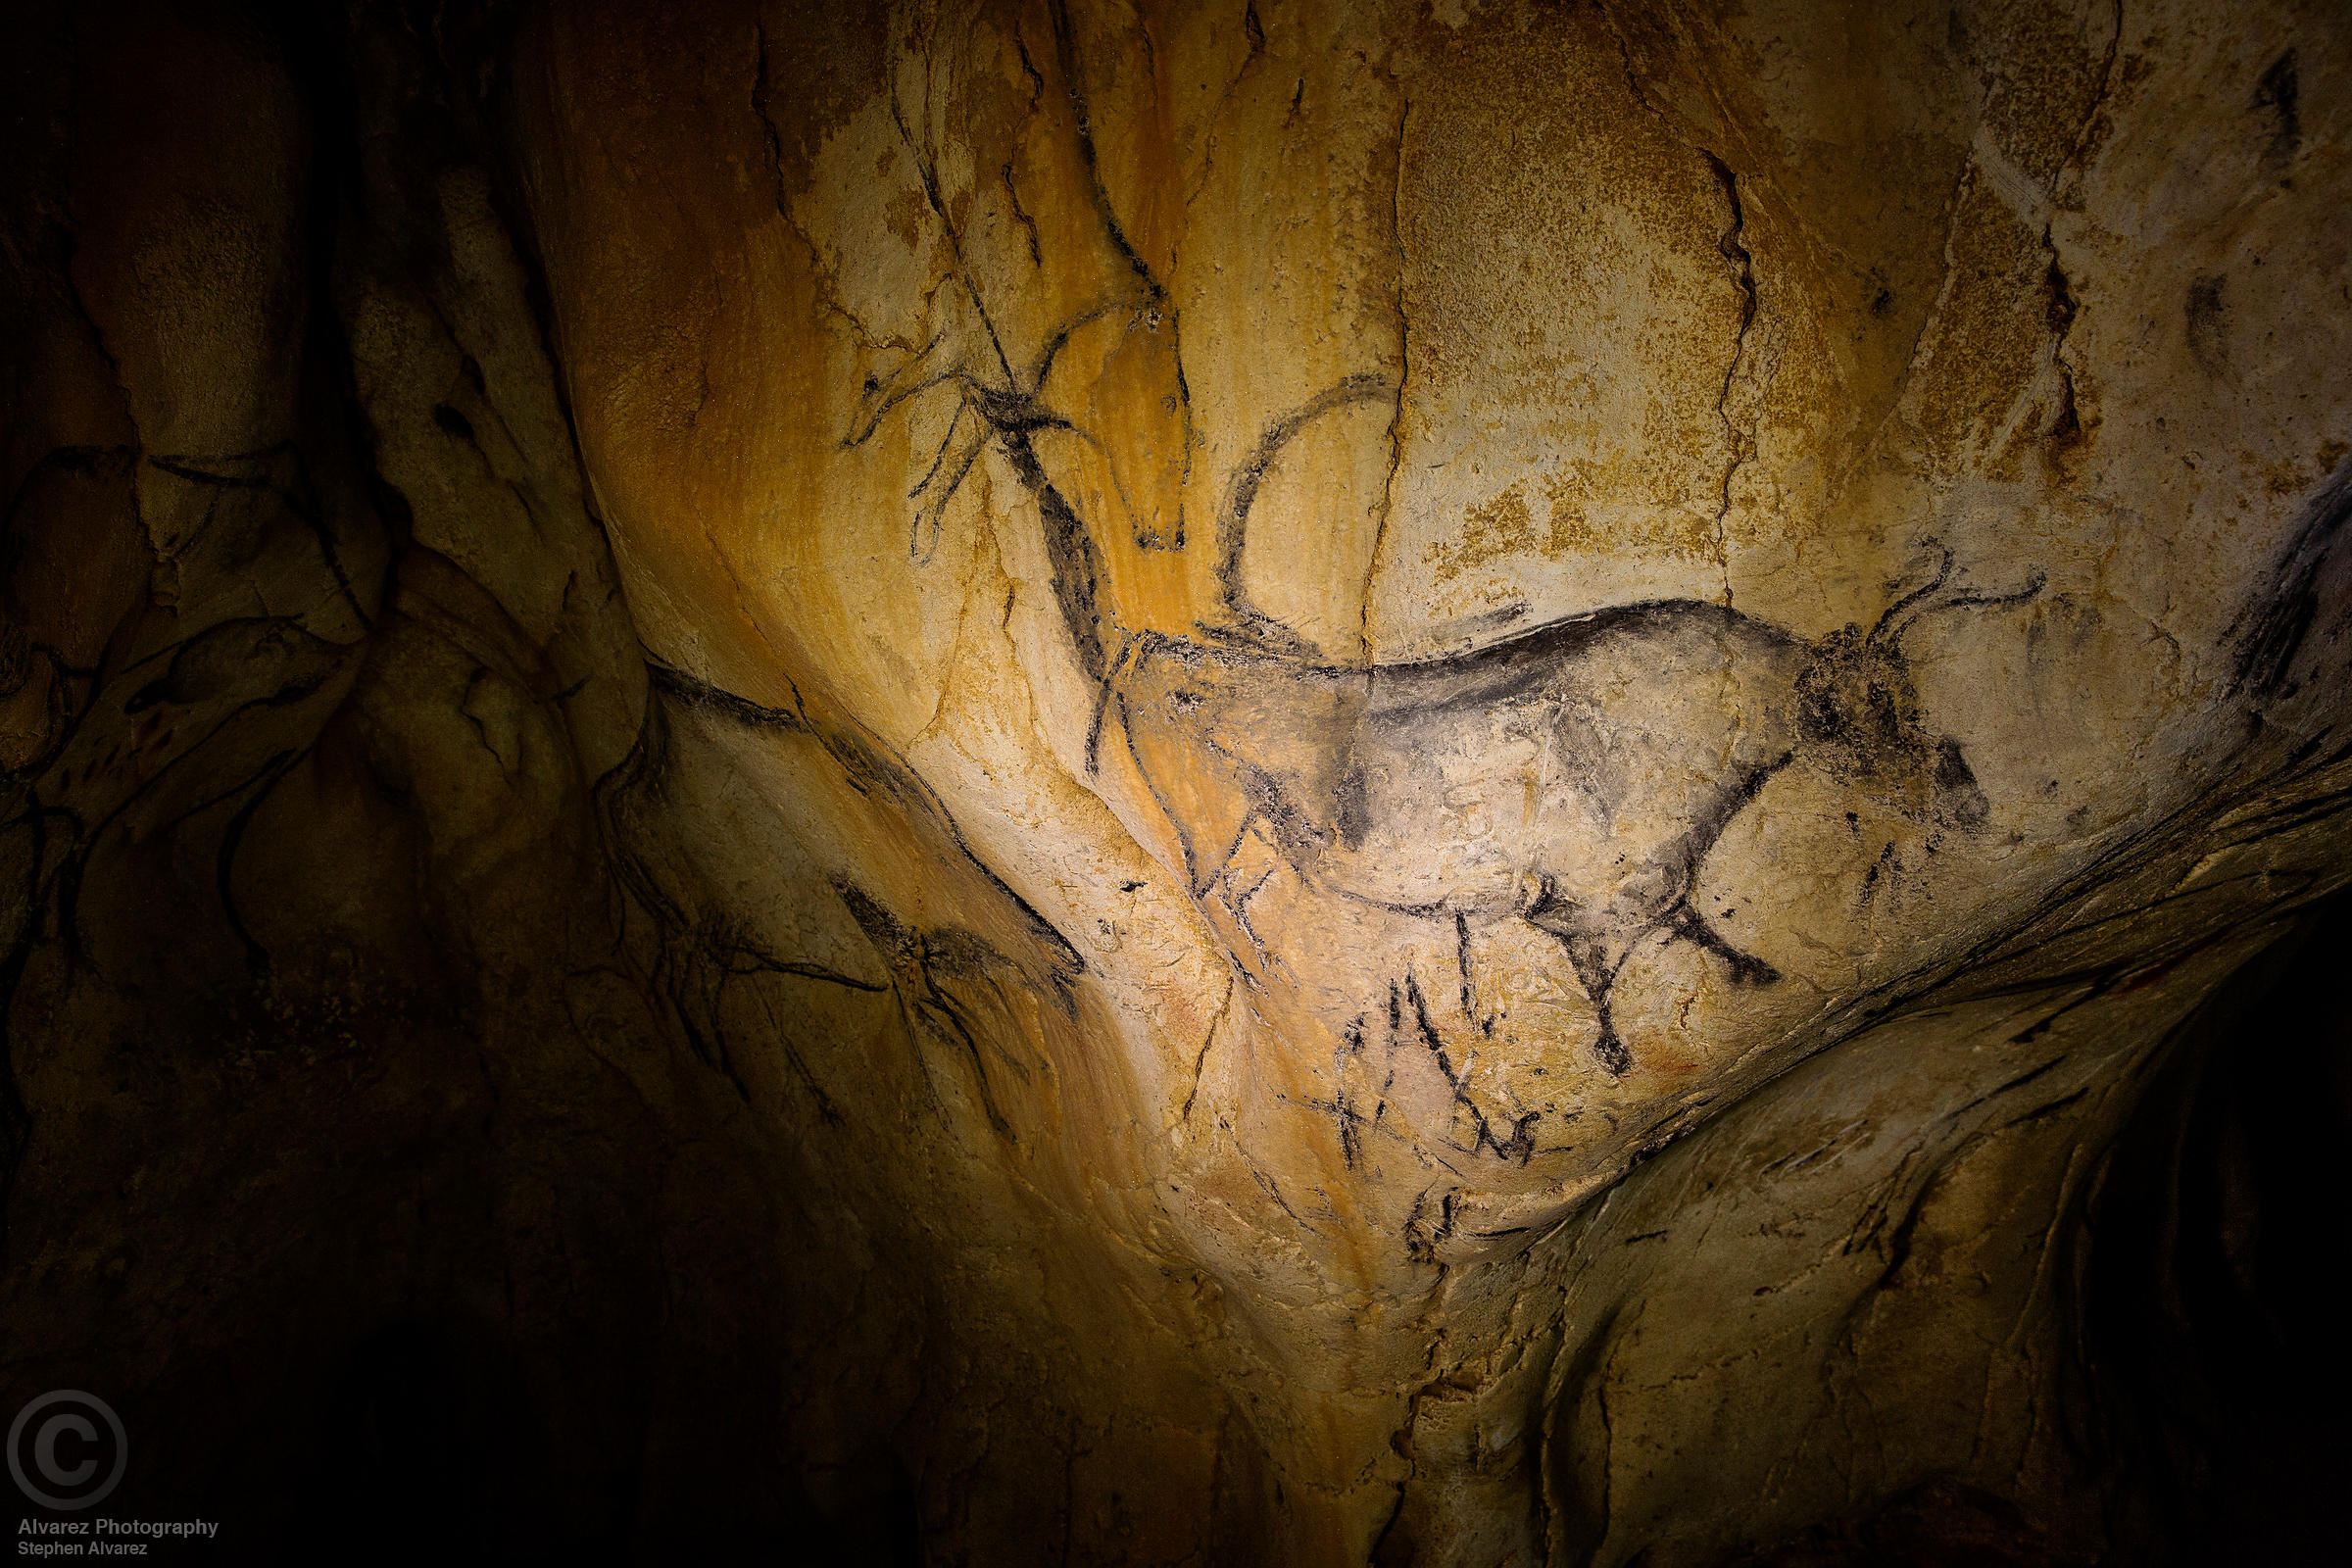 Auroch on the wall of Chauvet Cave, Ardeche France